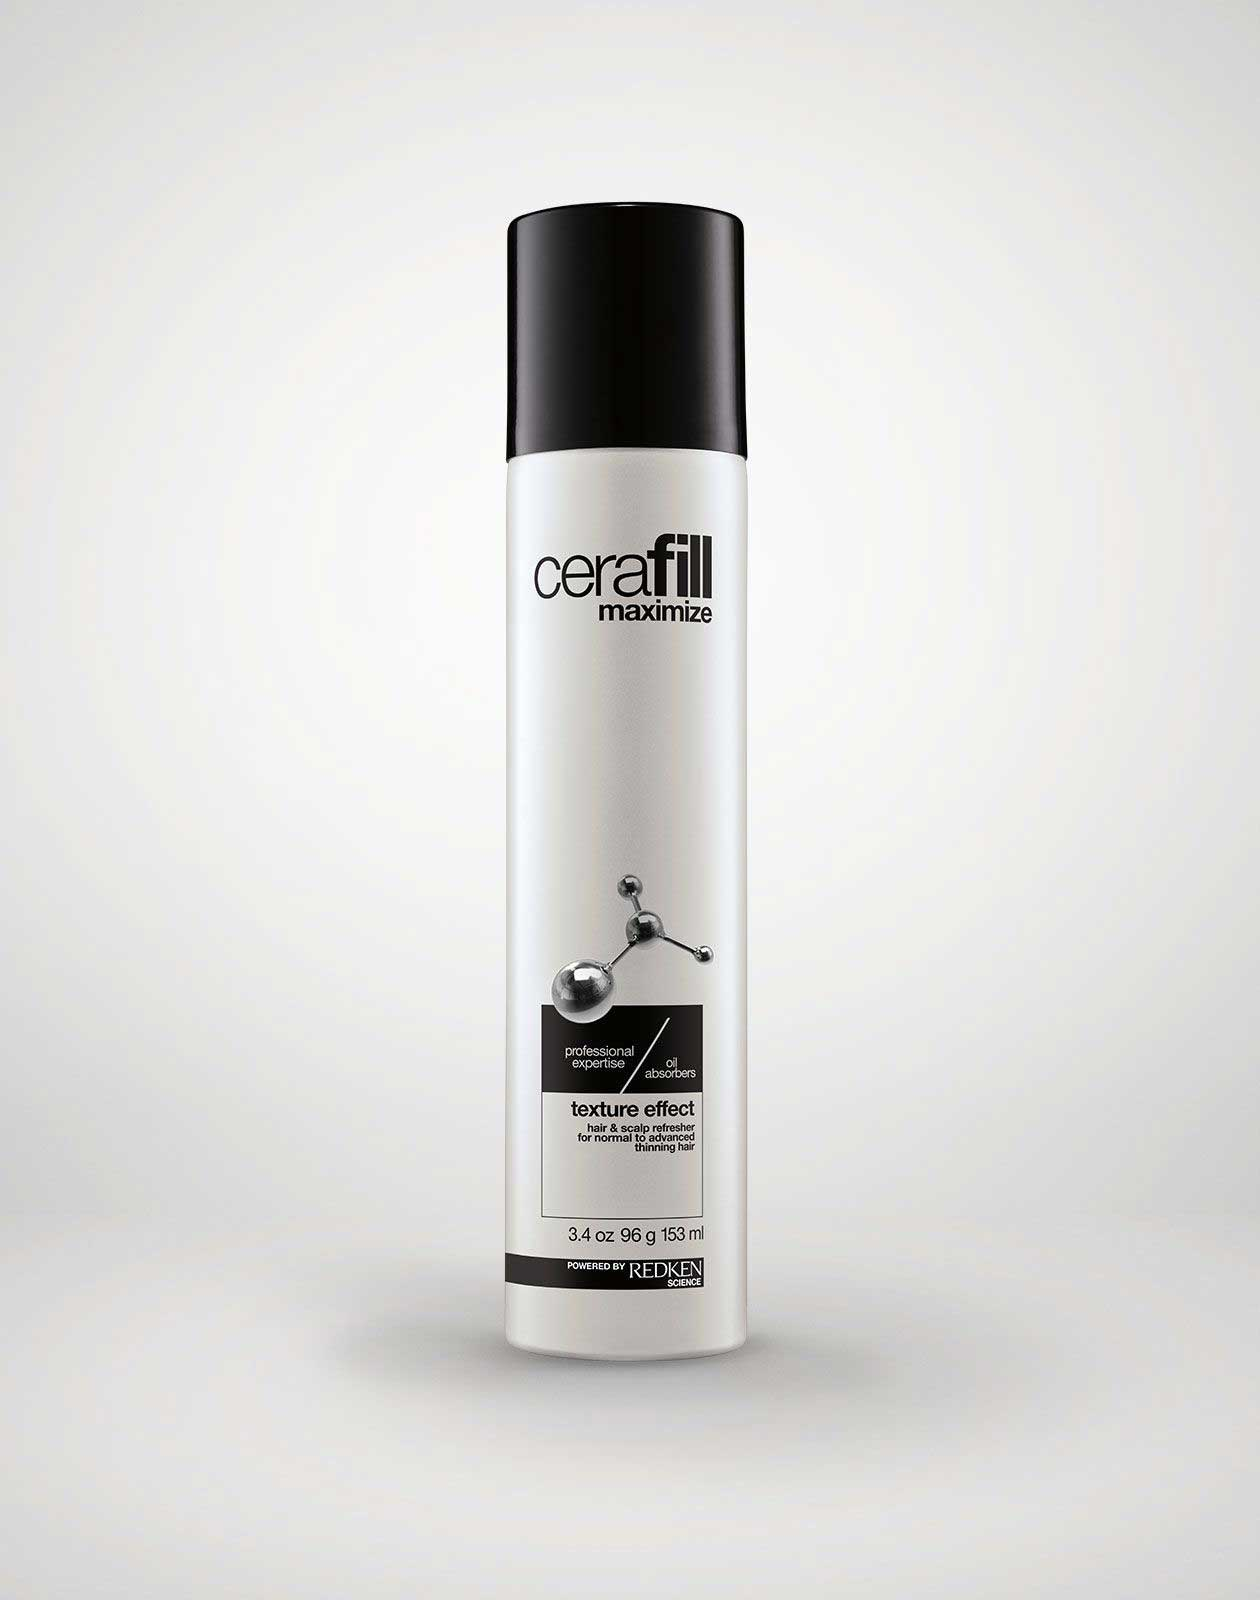 redken   cerafill thinning solutions: hair thickening products for